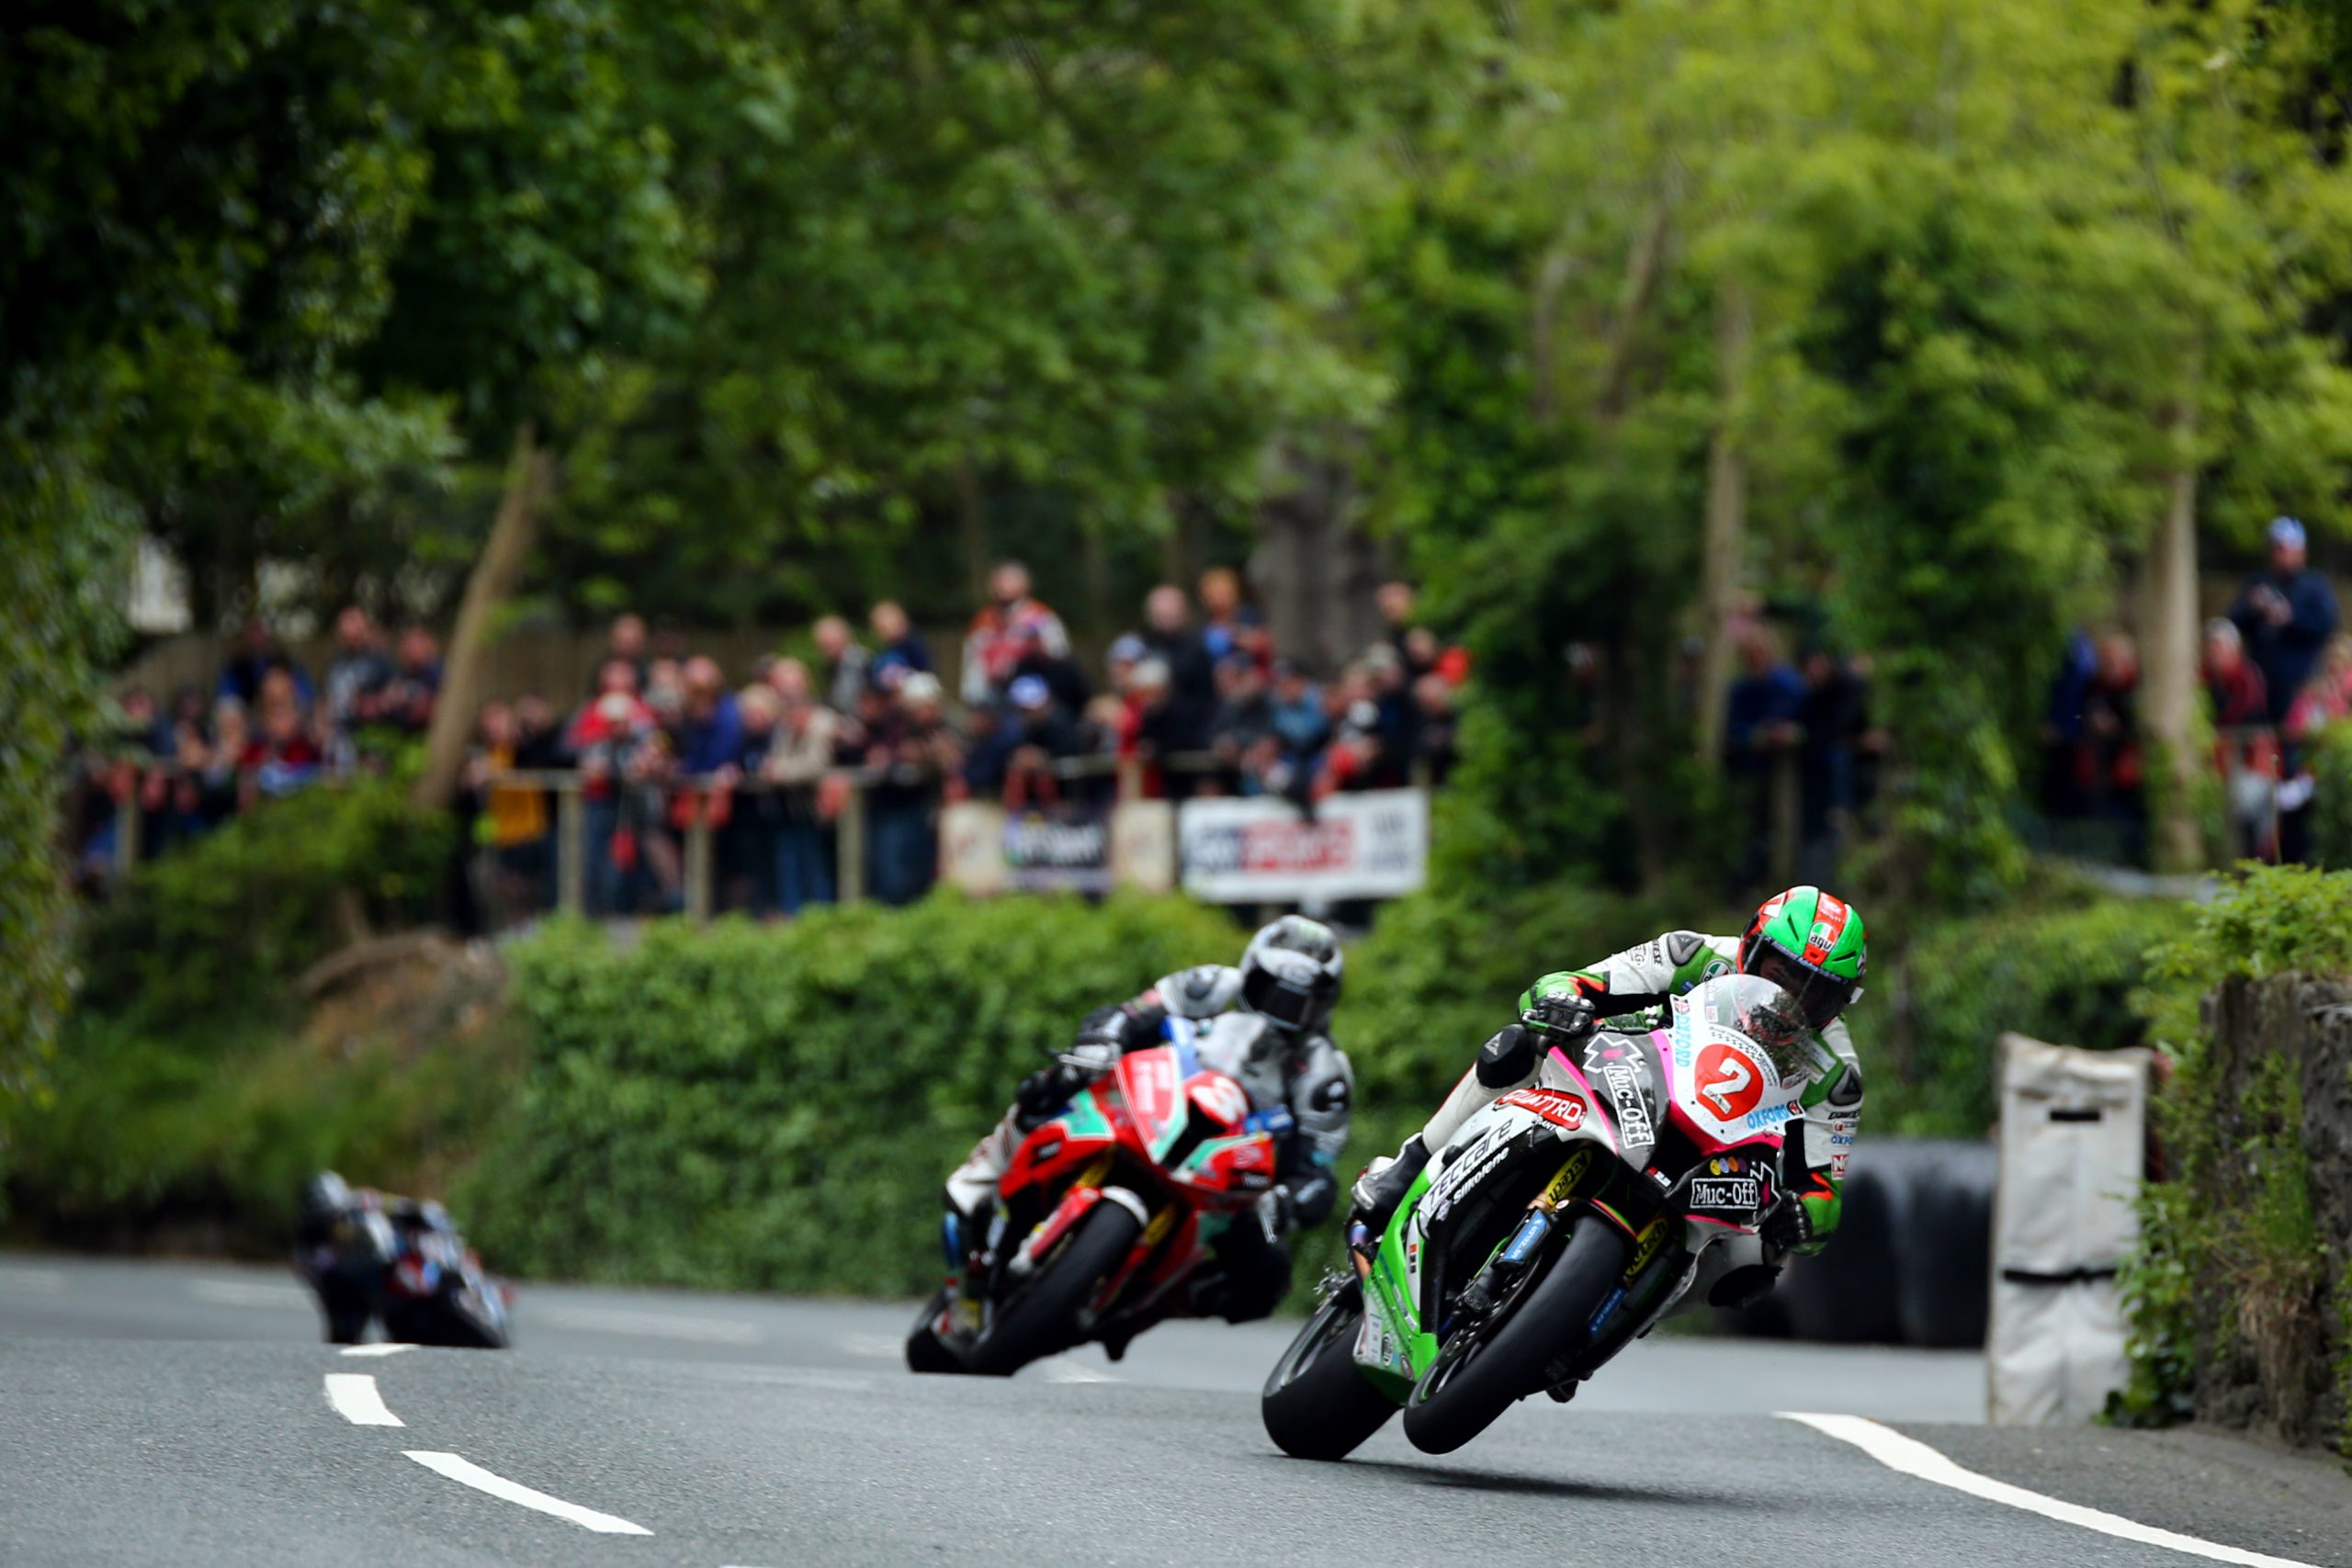 James Hillier leads Michael Dunlop at Union Mills